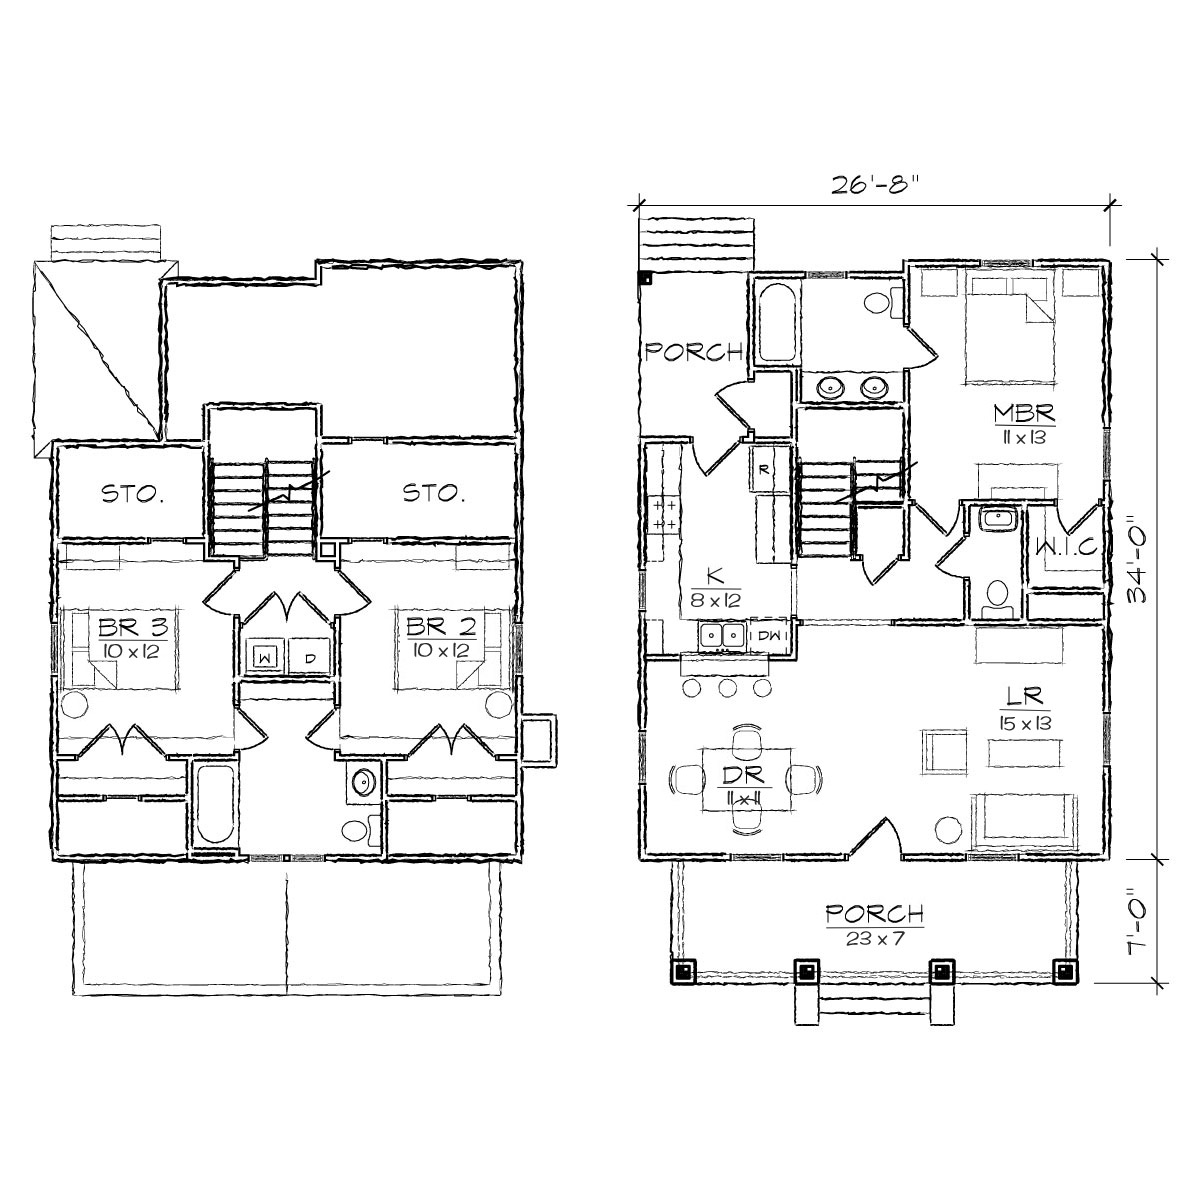 Bungalow house floor plans with dormers robinson bungalow Dormer floor plans